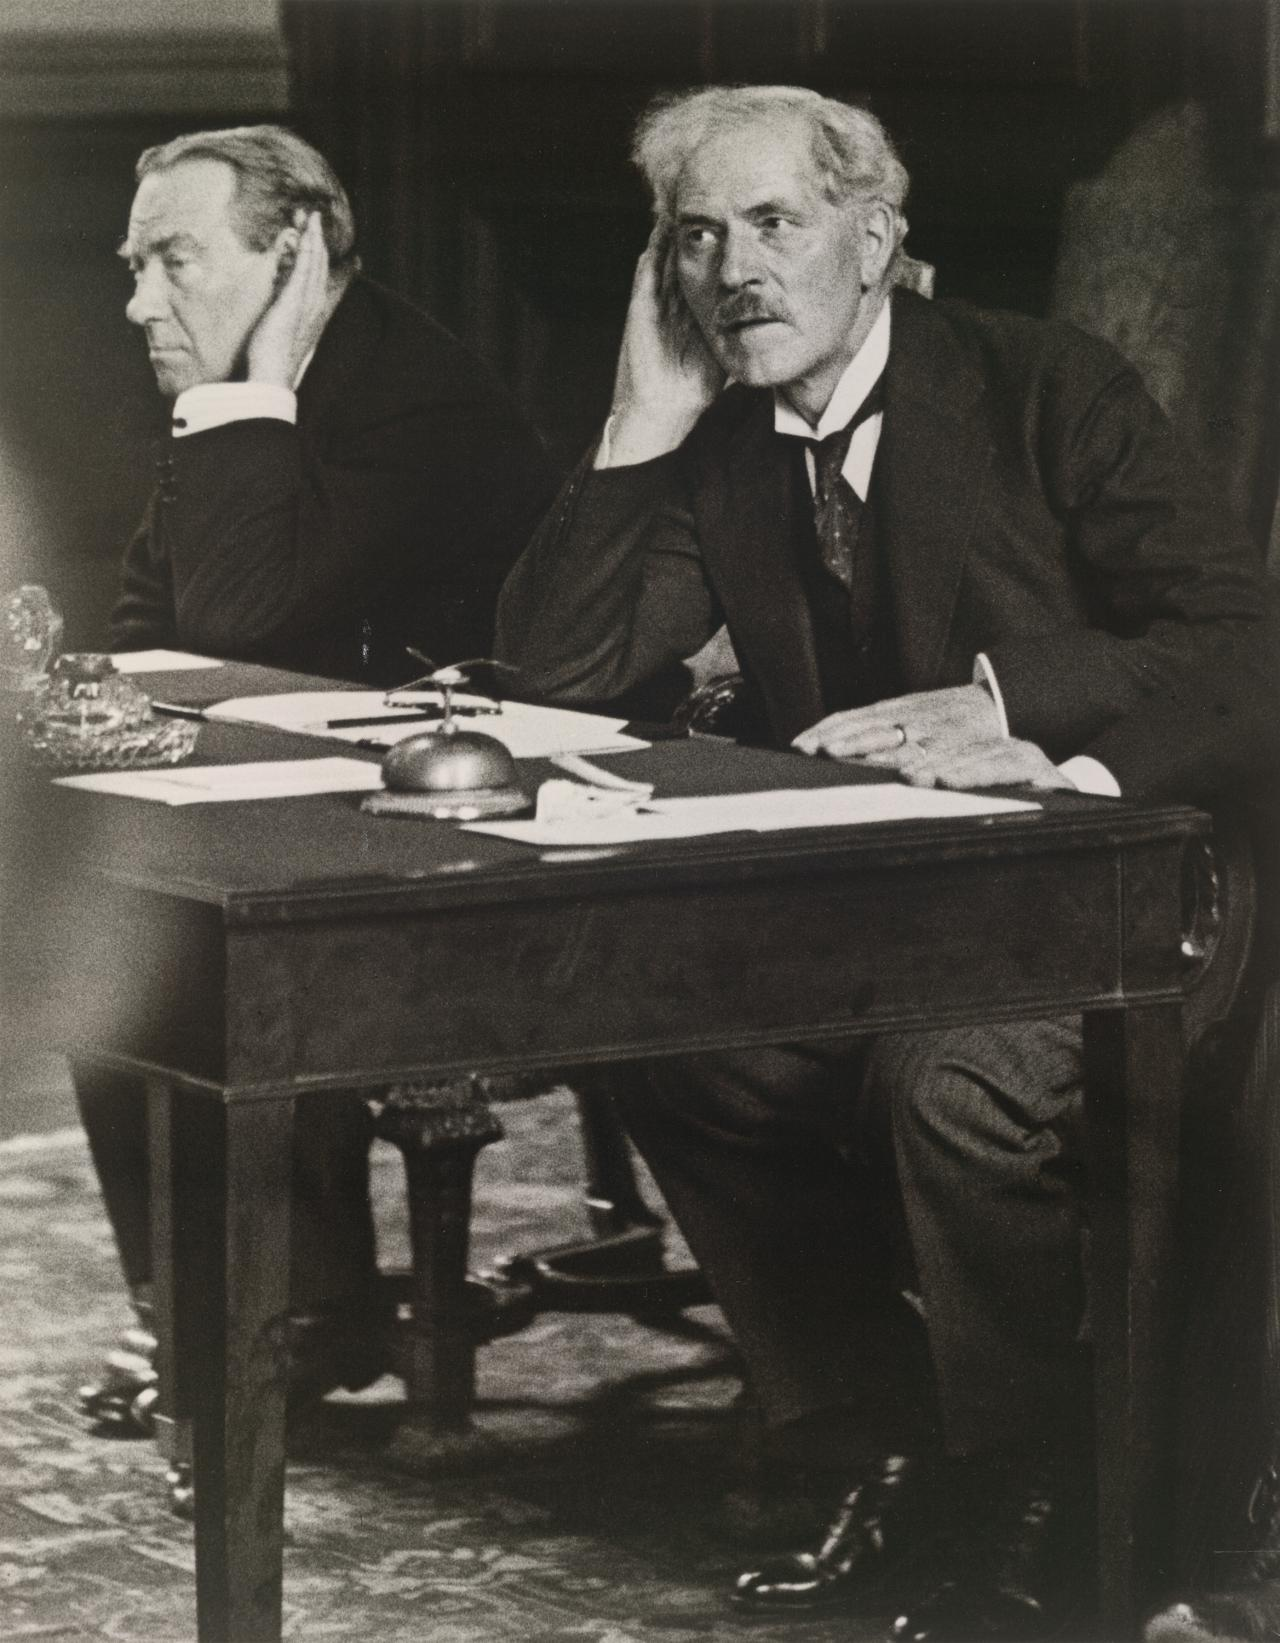 Stanley Baldwin and Ramsay Mac Donald at a Press Conference at the Foreign Office, 26 August 1931